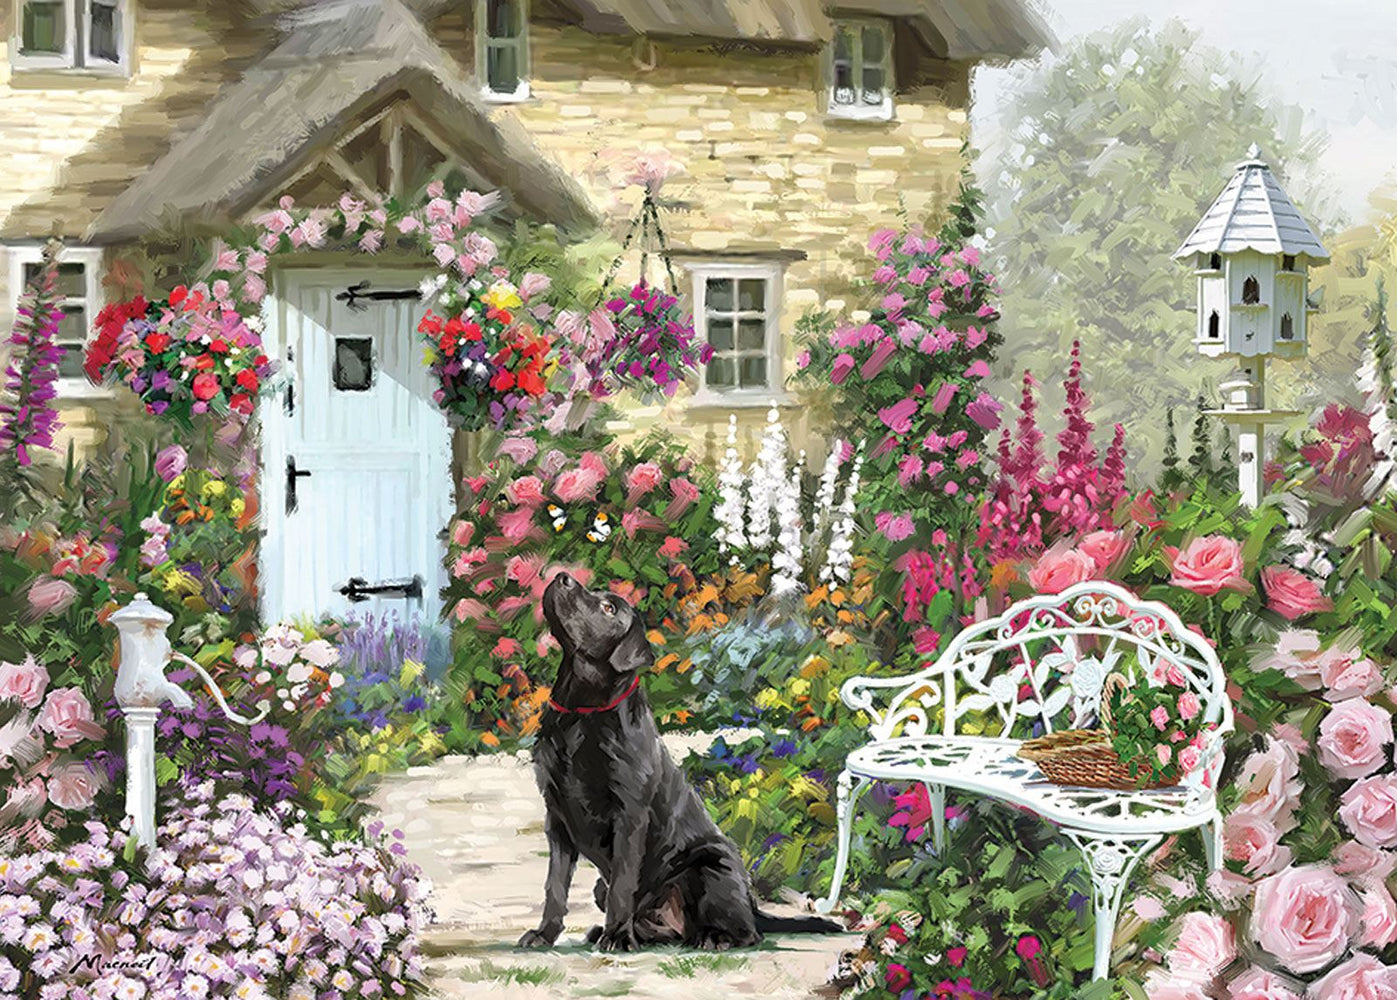 Cottage Garden 1000 Piece Jigsaw Puzzle